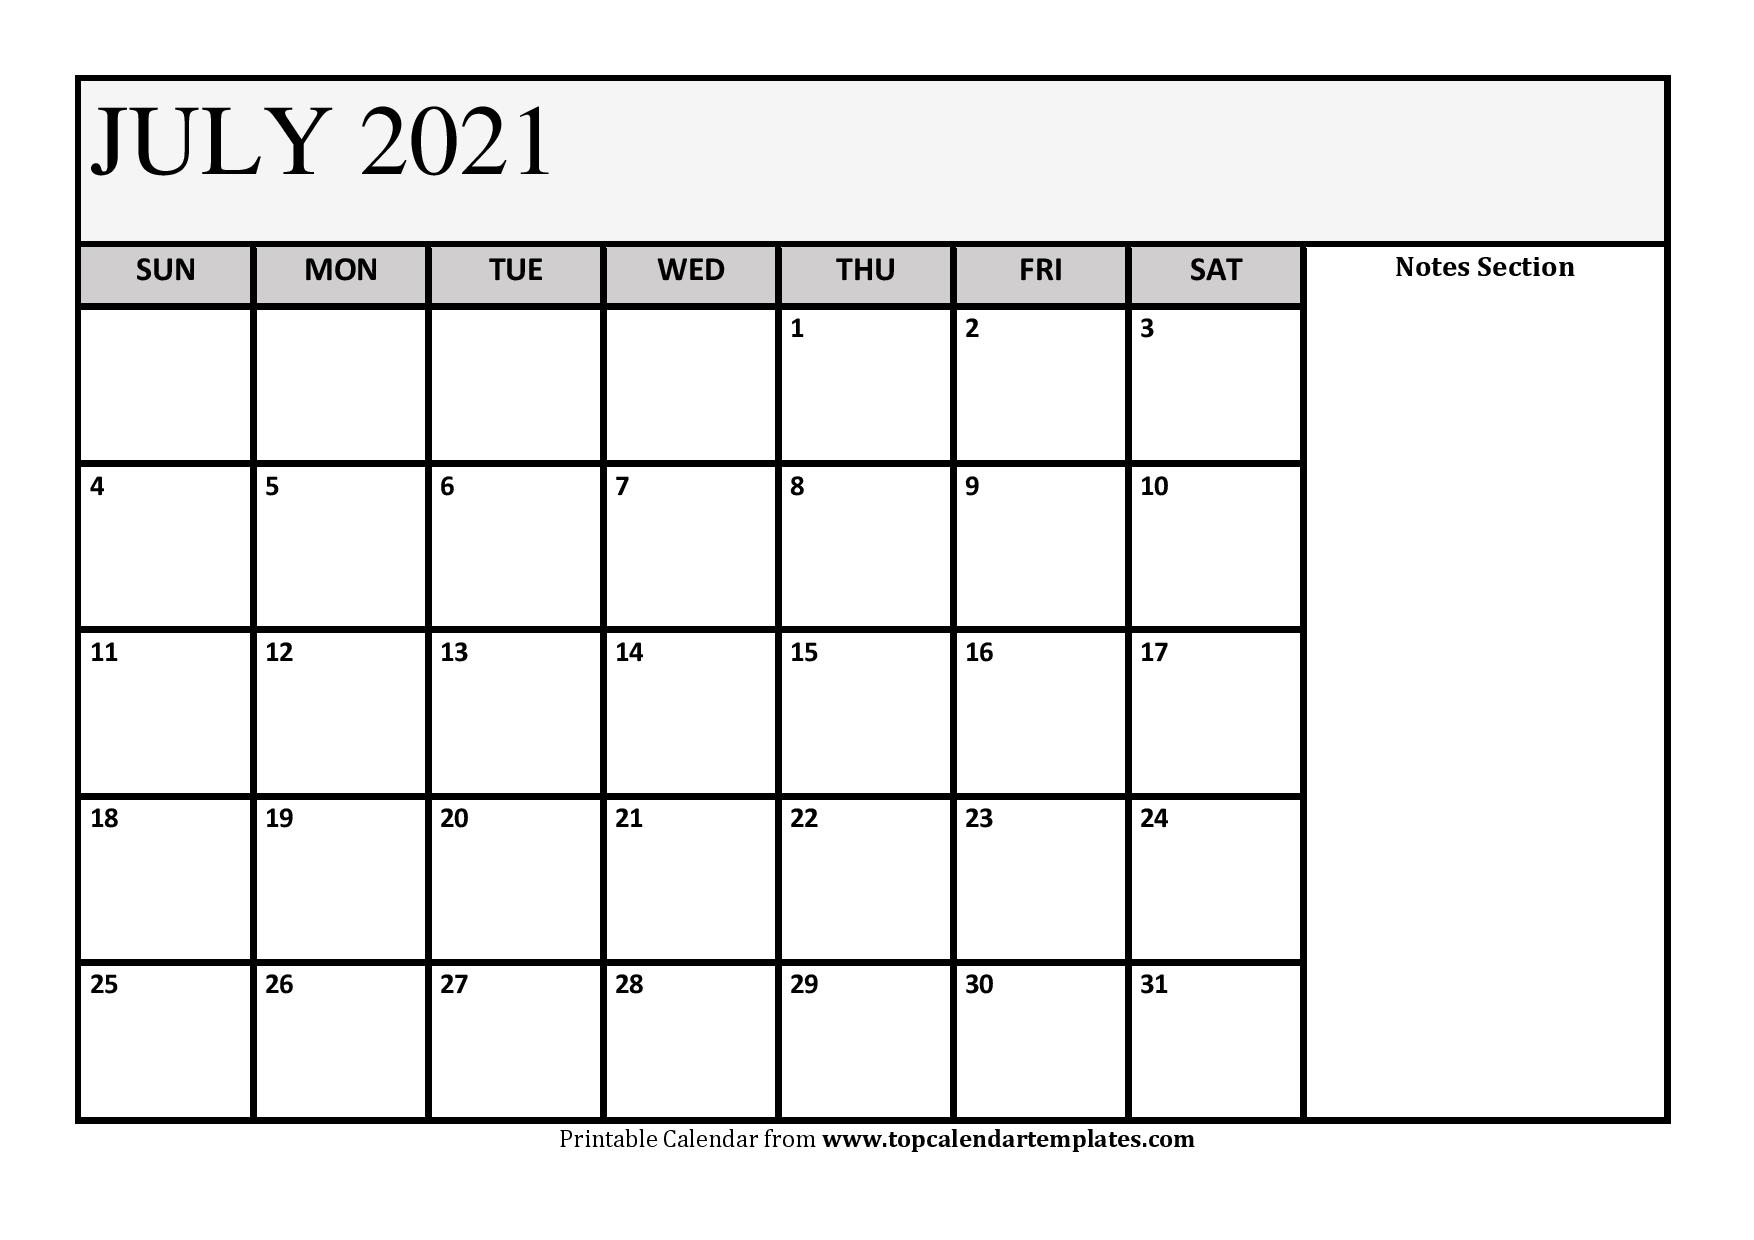 July 2021 Calendar and Notes